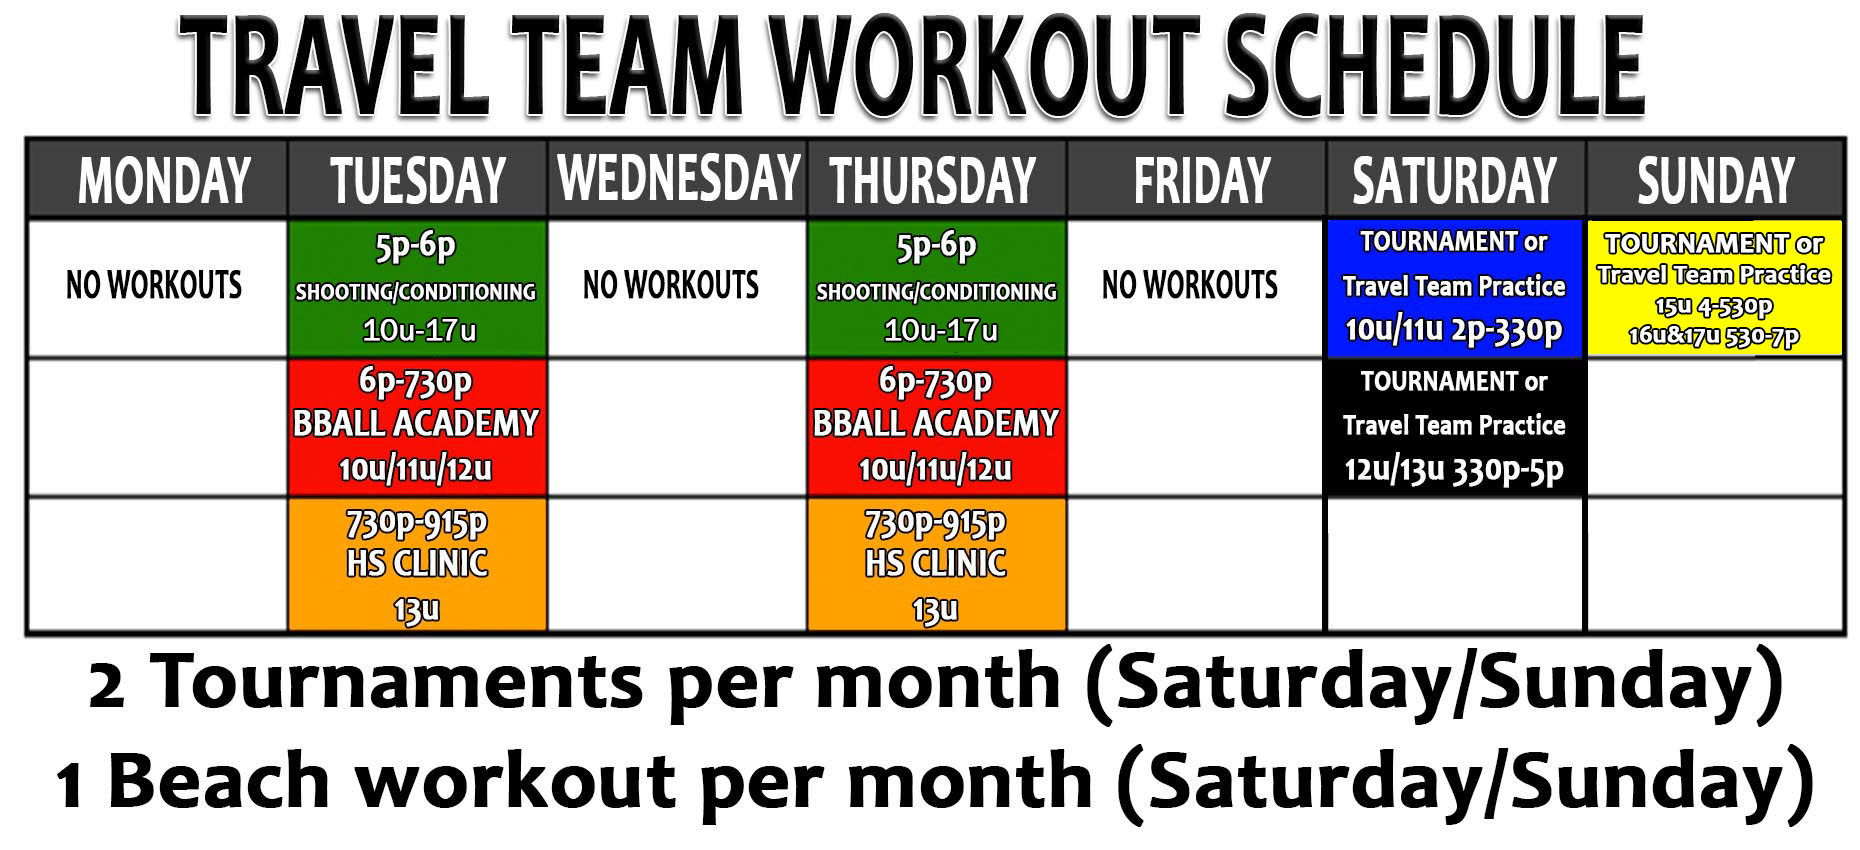 travel-team-WEEKLY-WORKOUT-CALENDAR copy